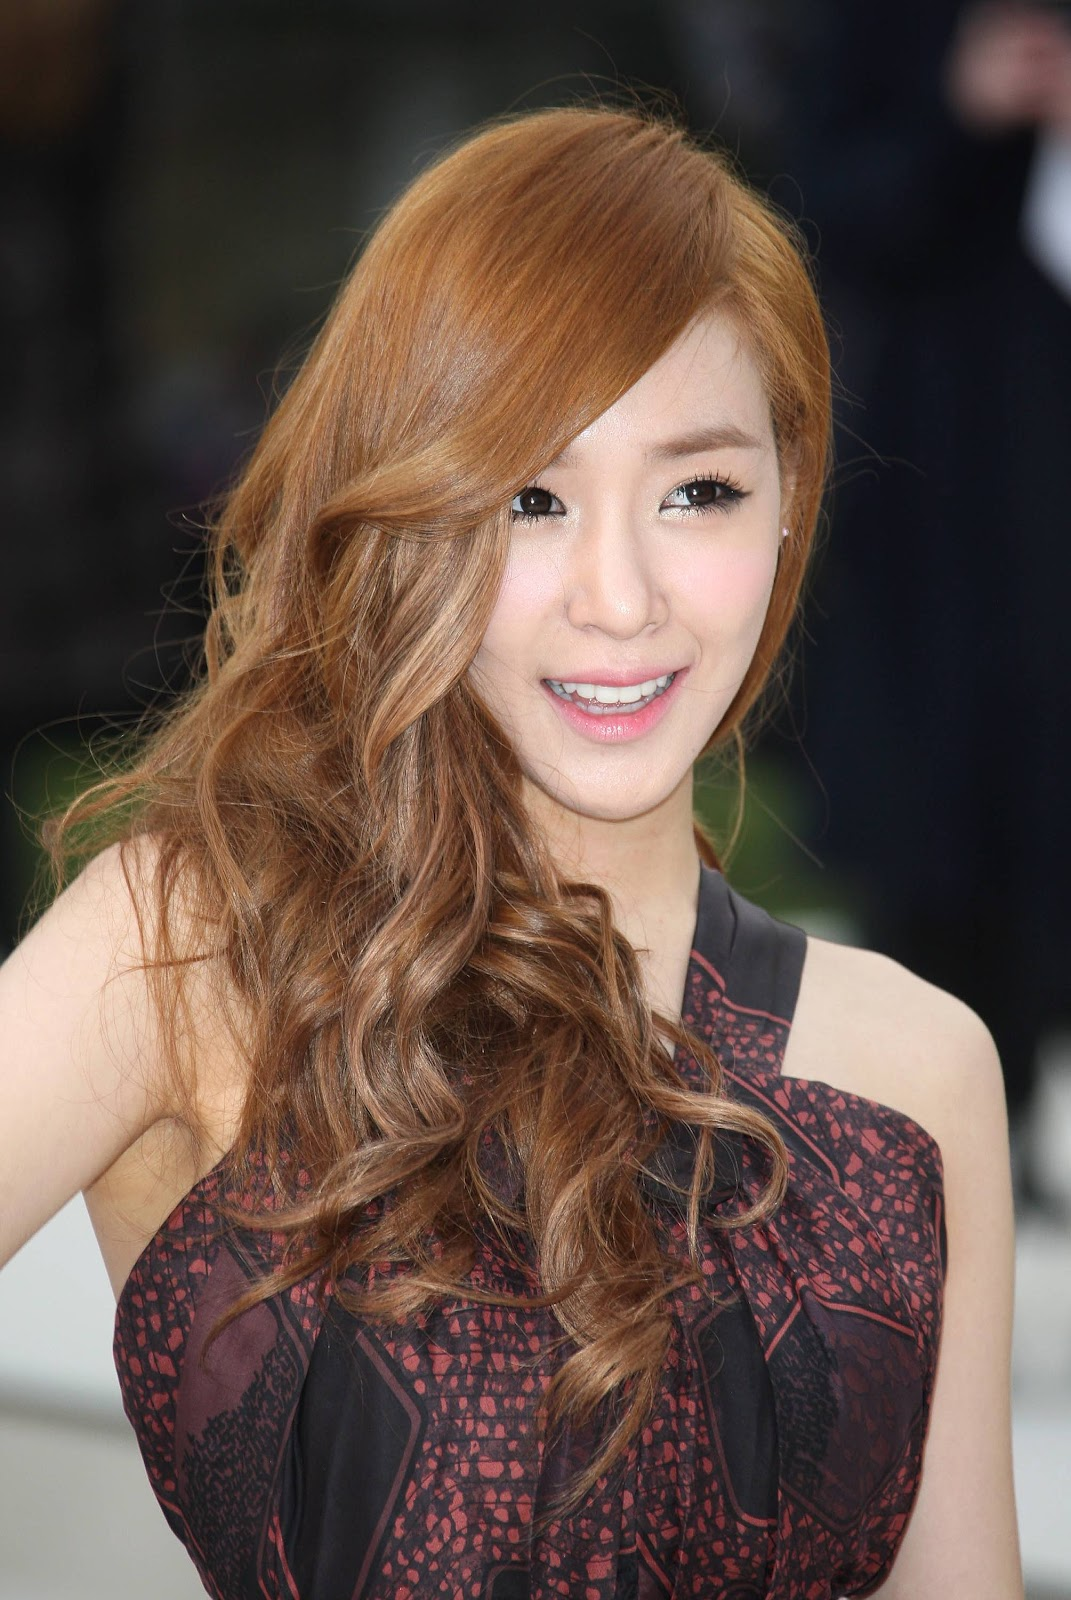 SNSD Tiffany Hwang ツ: 10 SNSD Tiffany picture SPAM